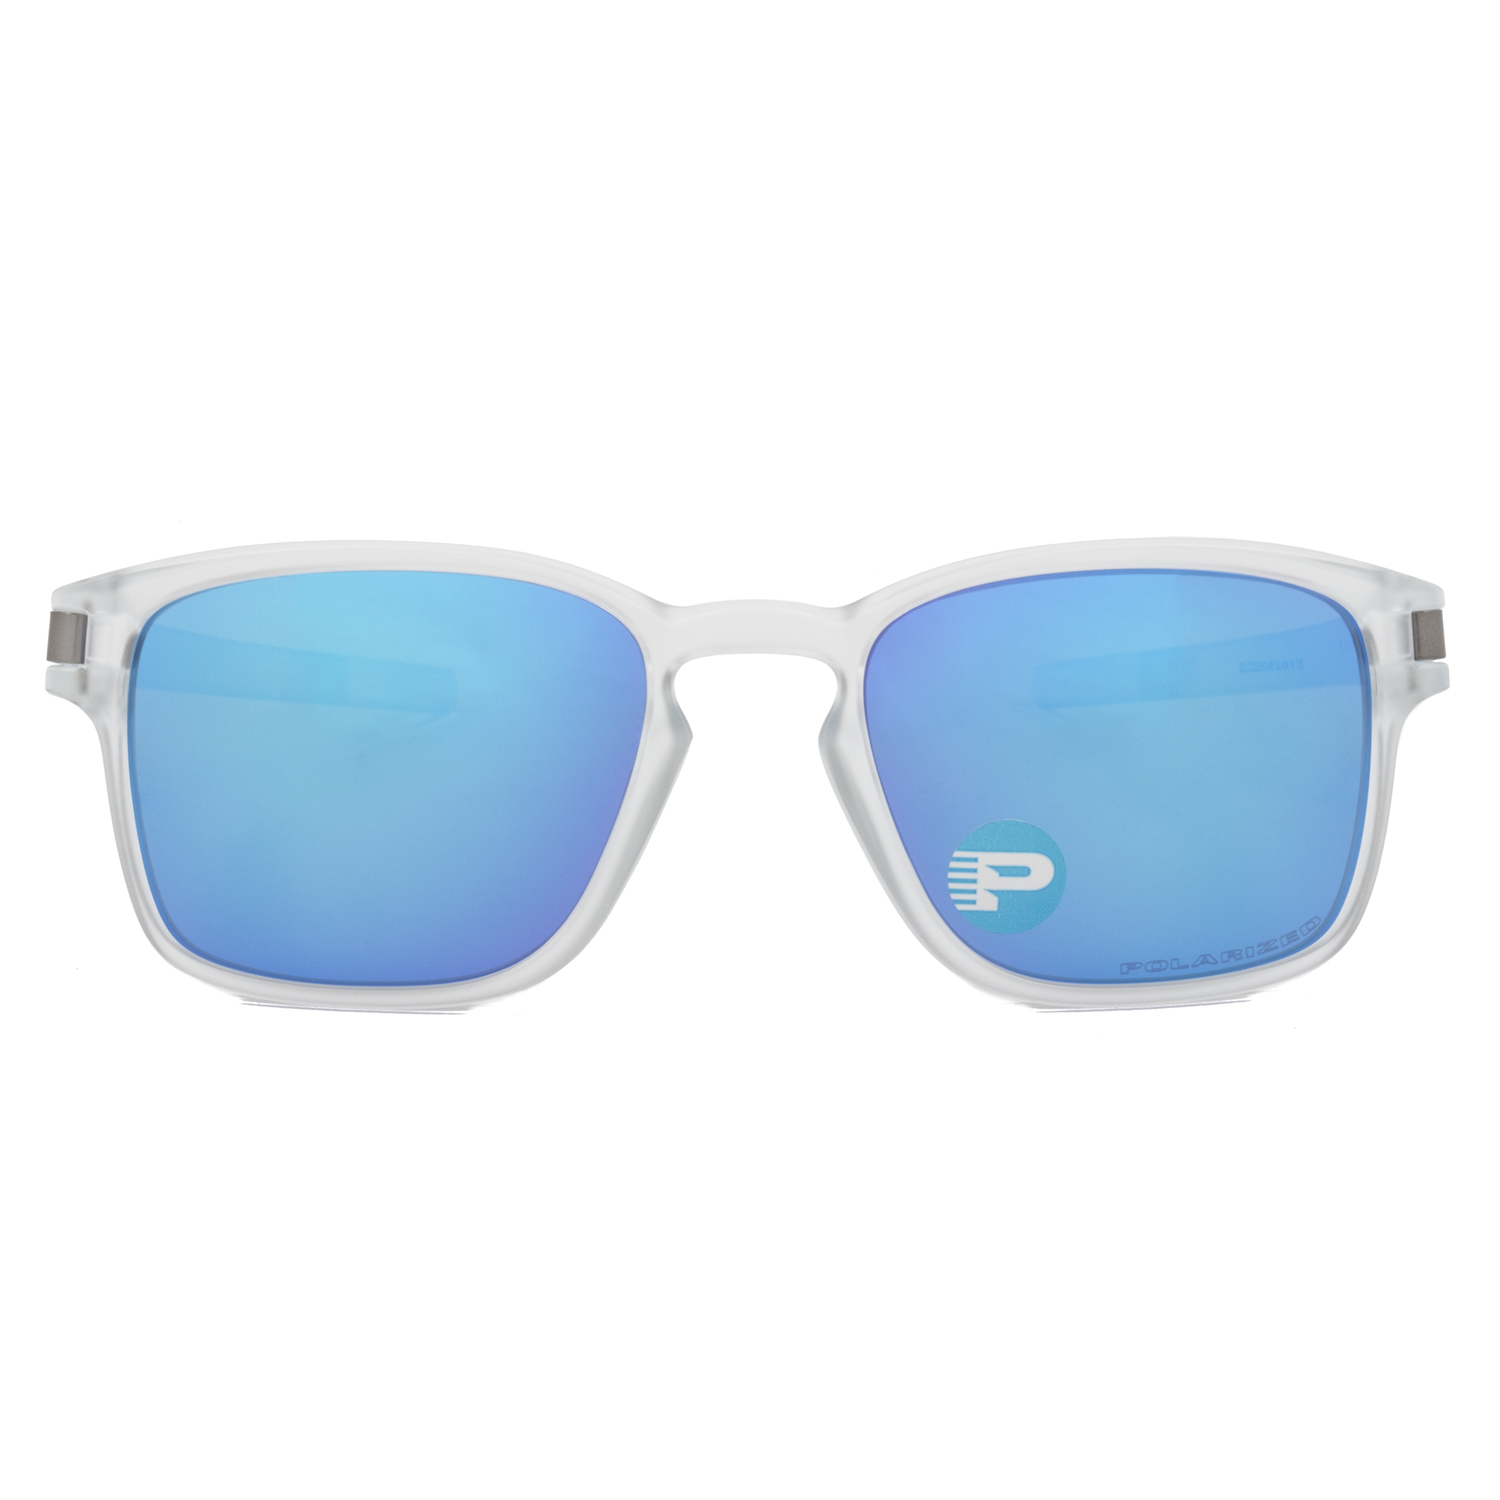 Oakley Clear Frame Glasses : Oakley Latch Square Sunglasses OO9353-06 Clear Frame ...